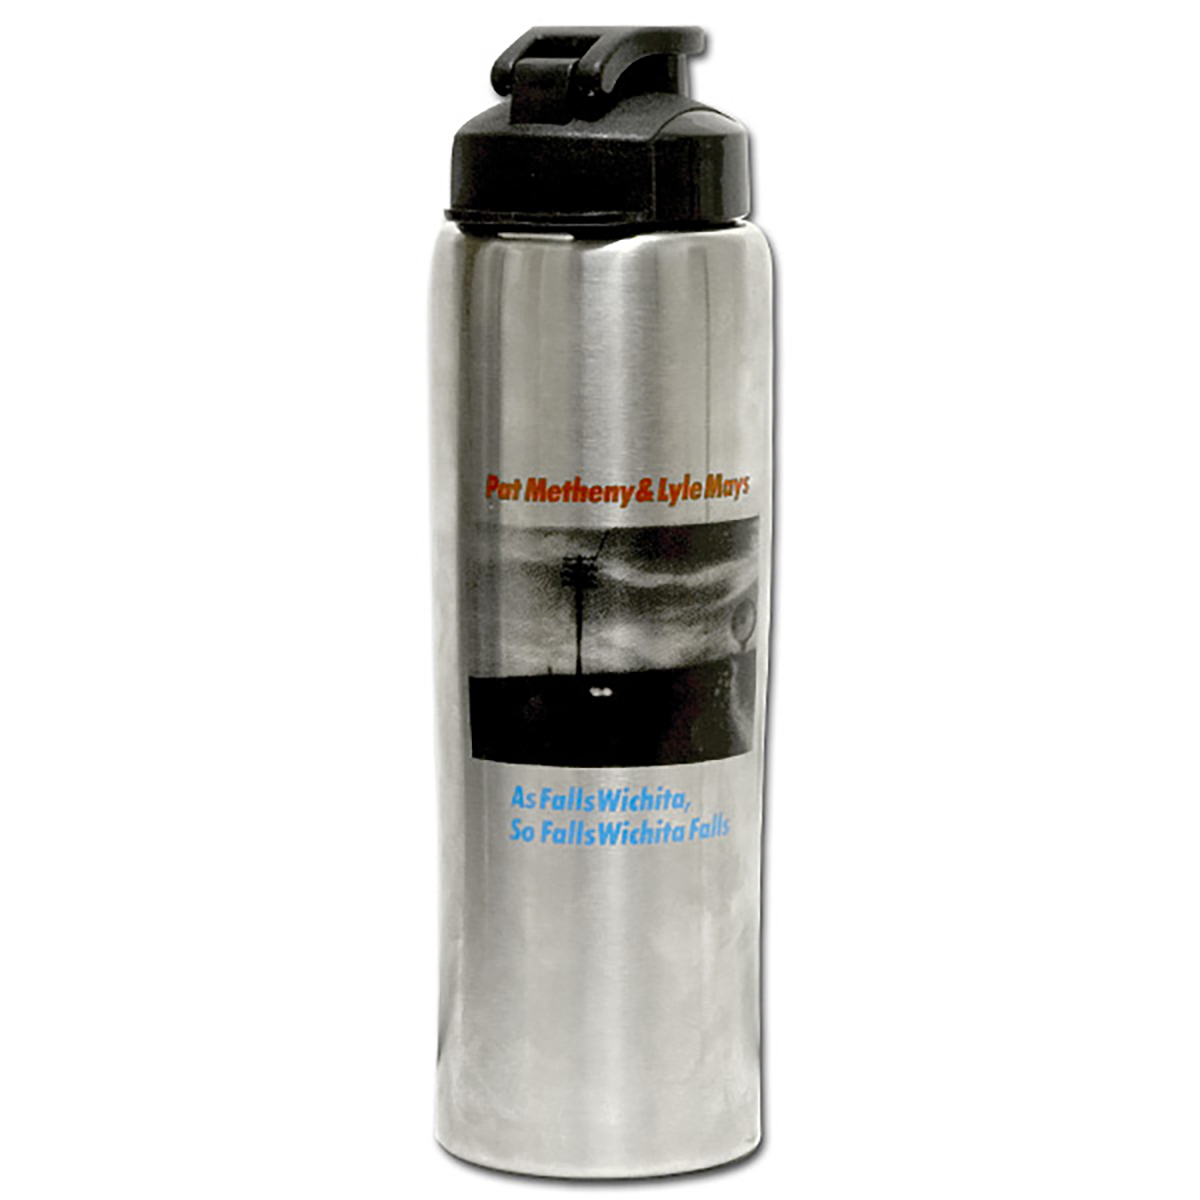 Pat Metheny - As Falls Wichita, So Falls Wichita Falls Water Bottle